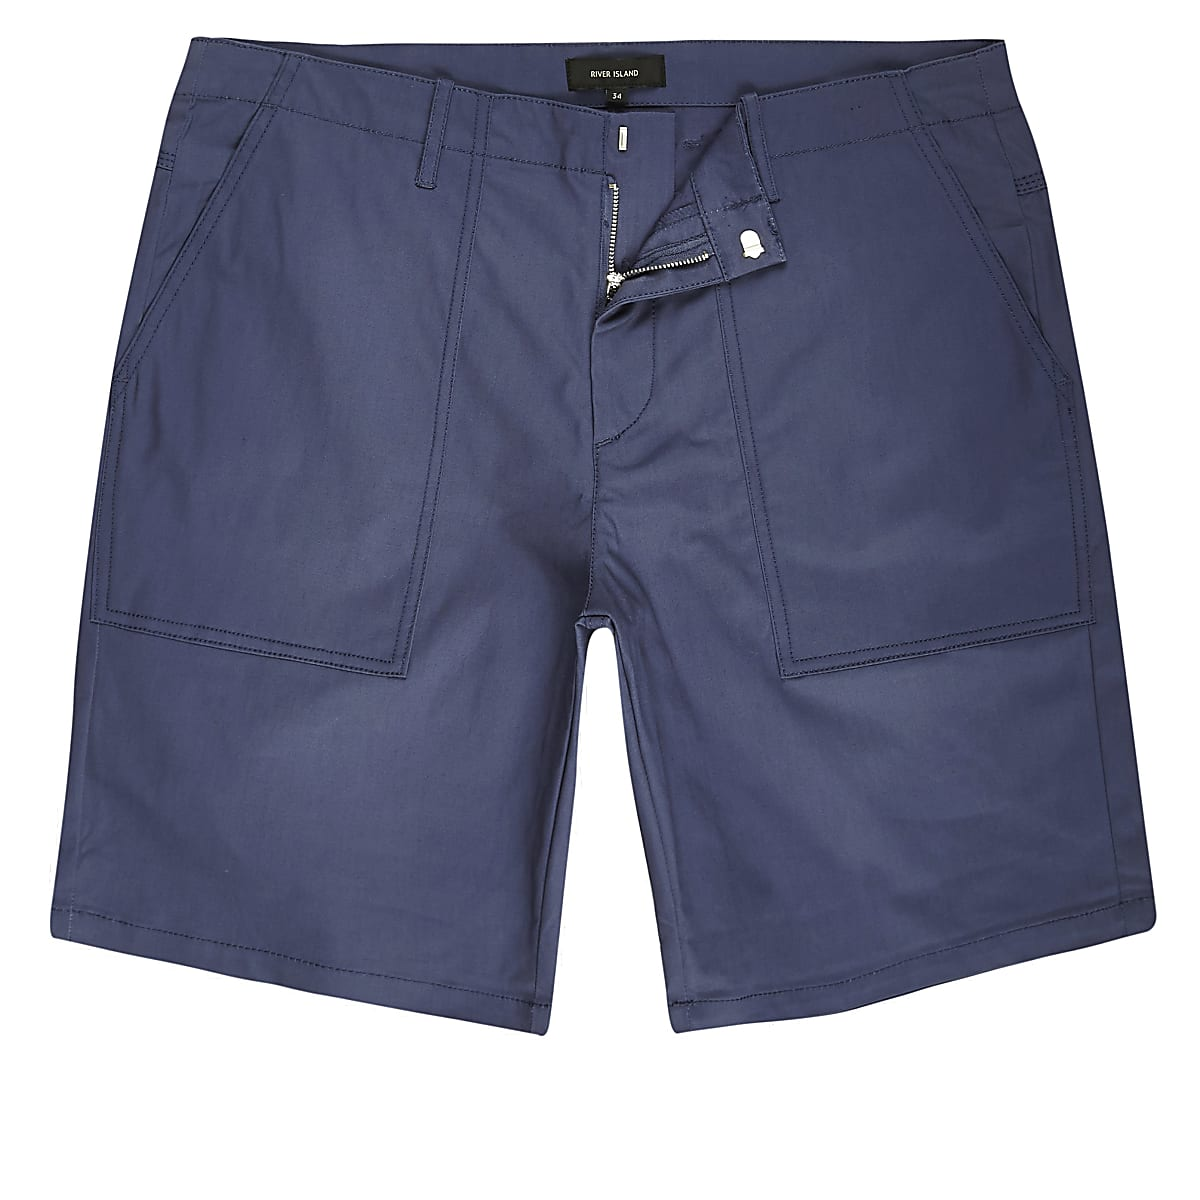 Blue smart slim fit chino shorts